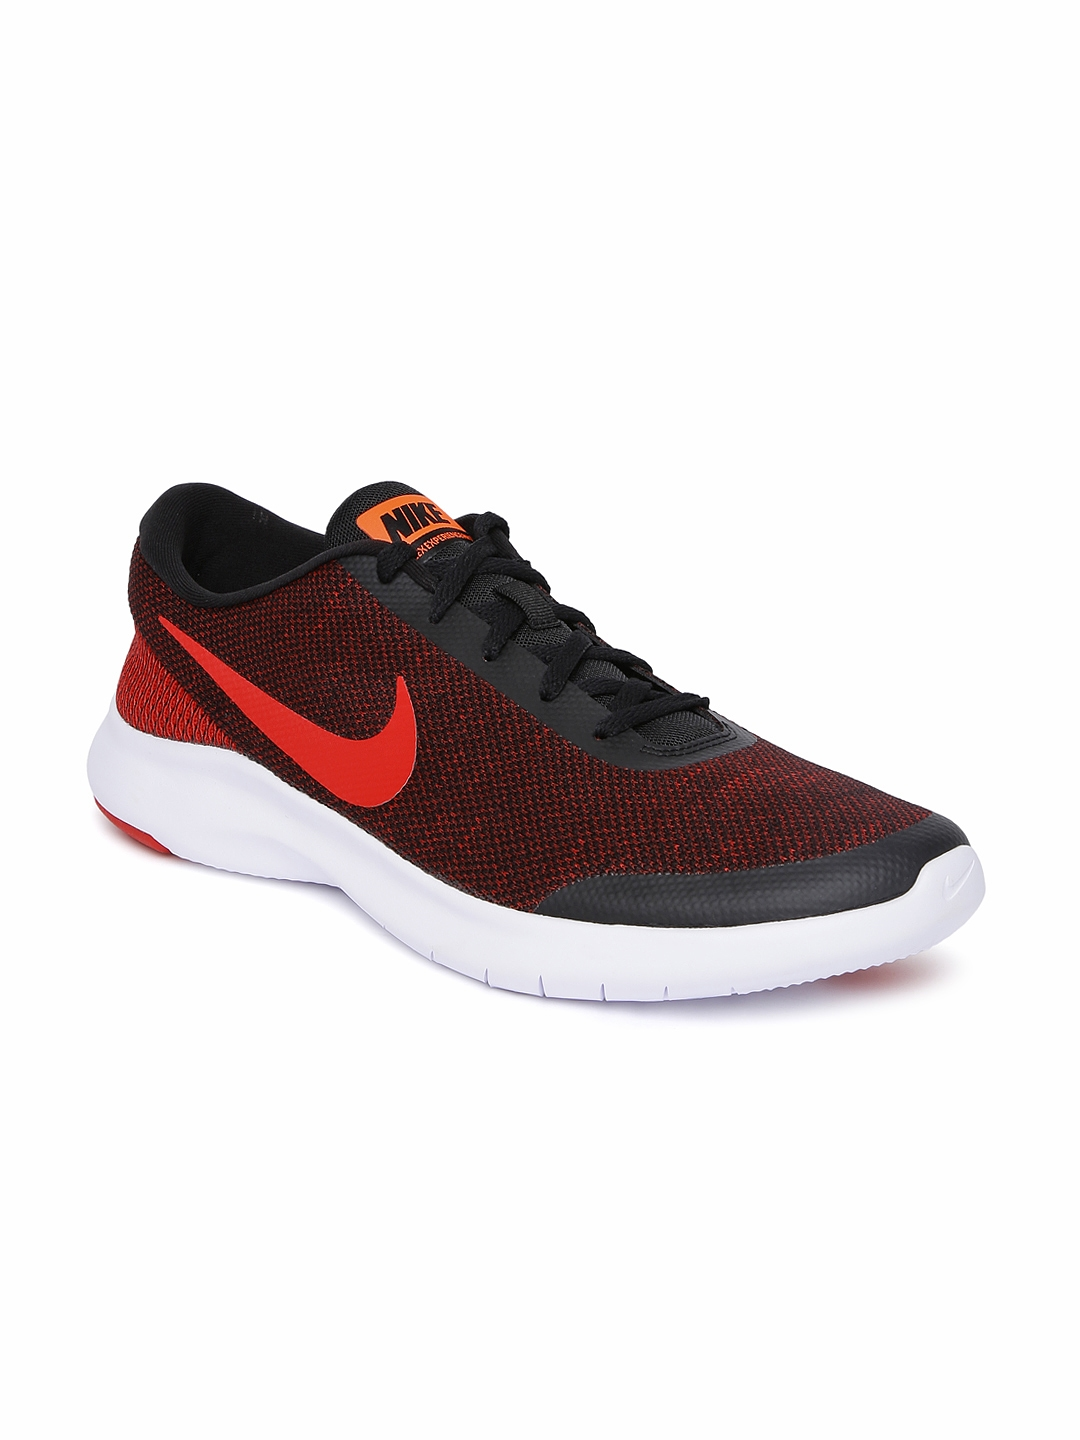 online store d9e6f 86054 Nike Men Maroon   Black FLEX EXPERIENCE RN 7 Running Shoes